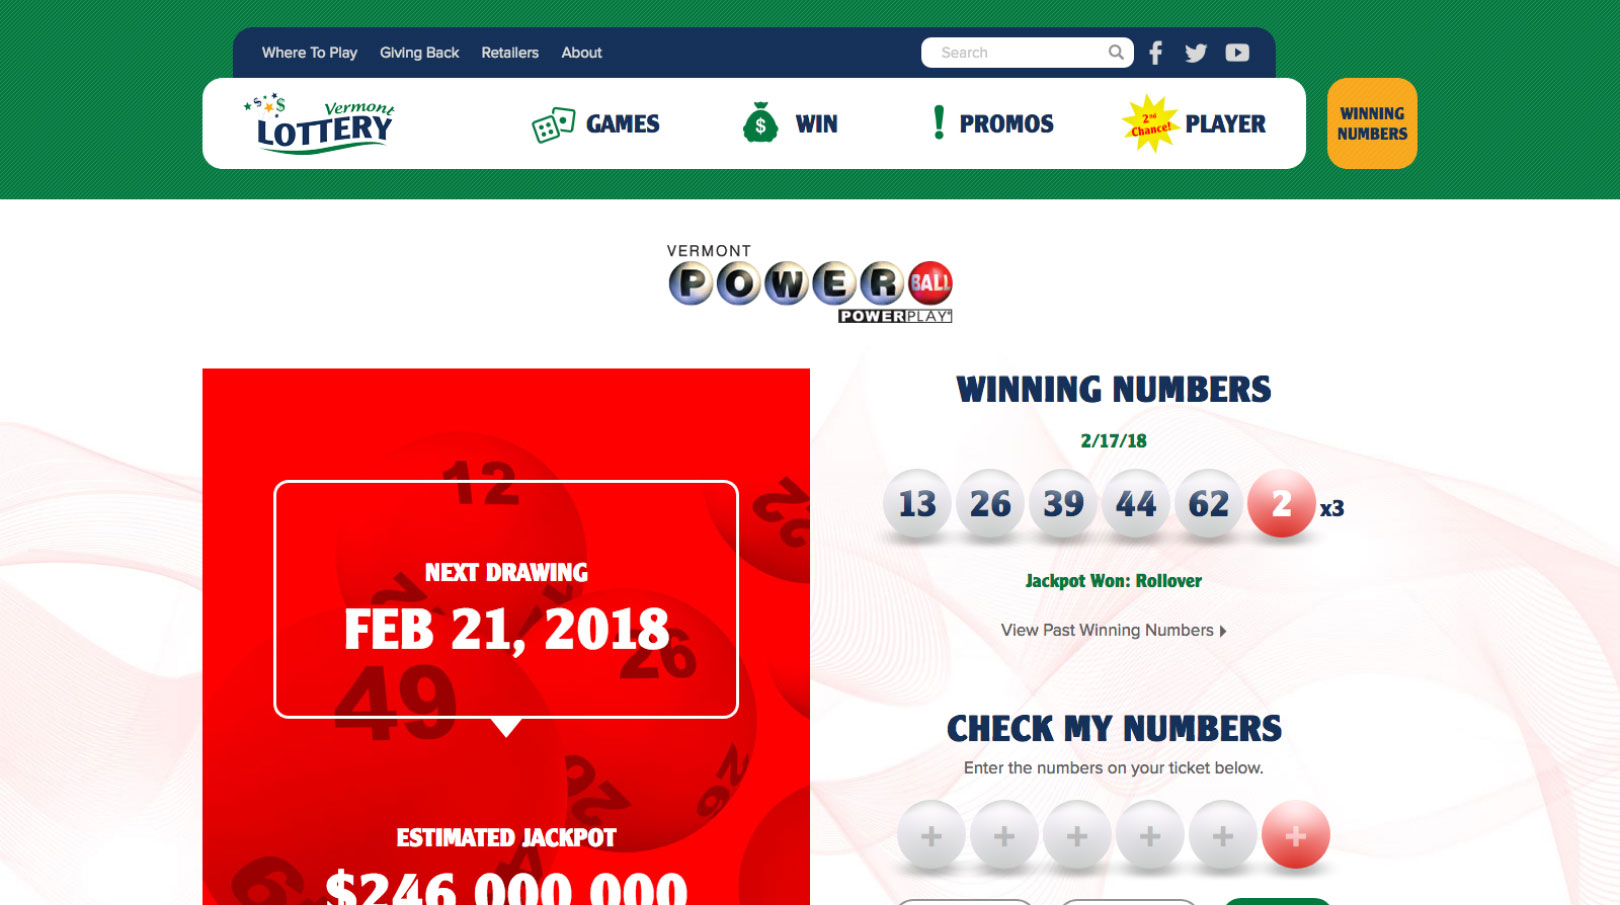 Vermont Lottery game